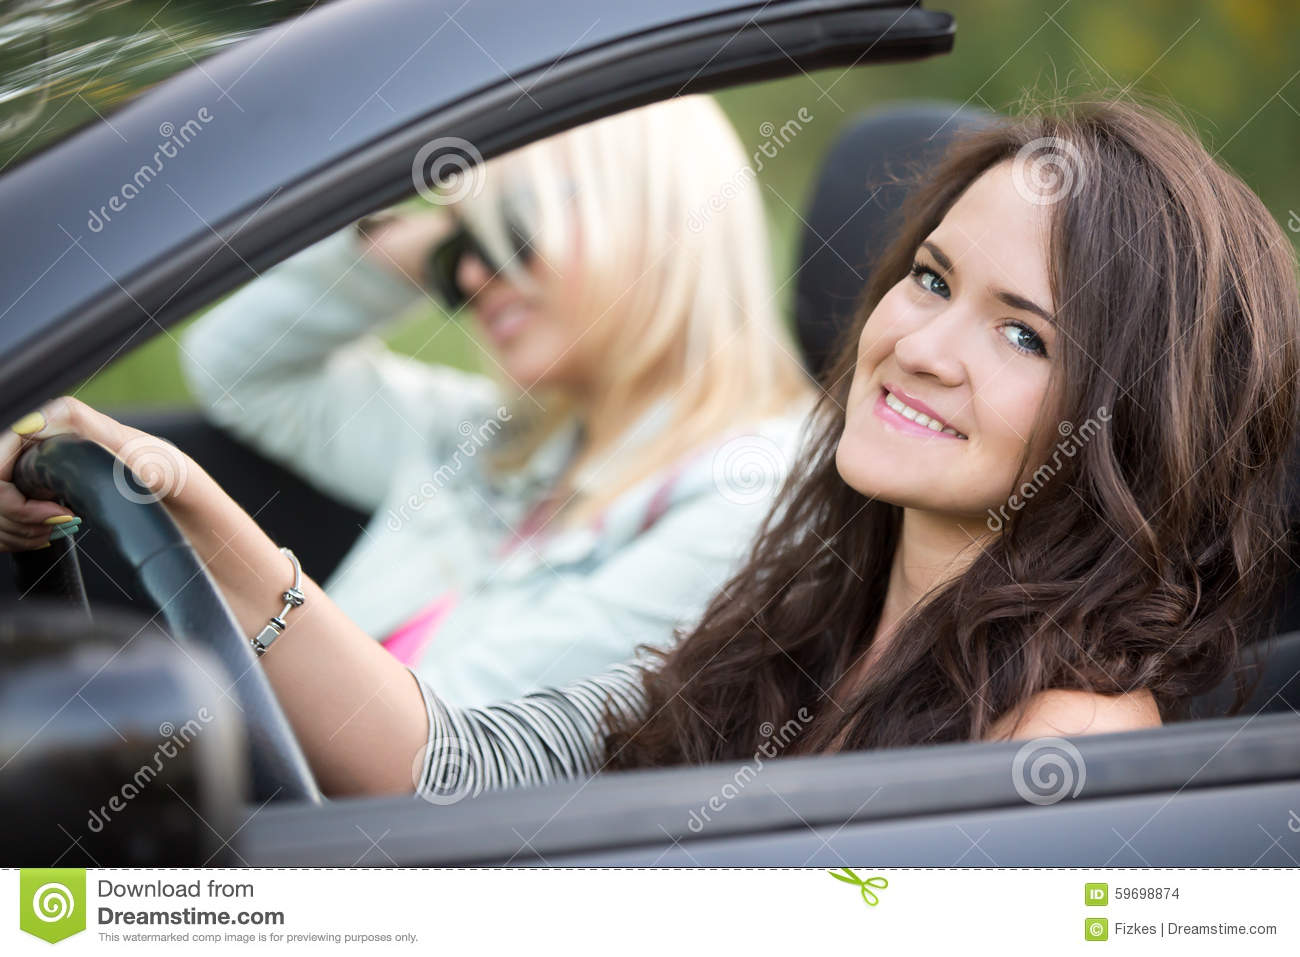 driving a car or riding a